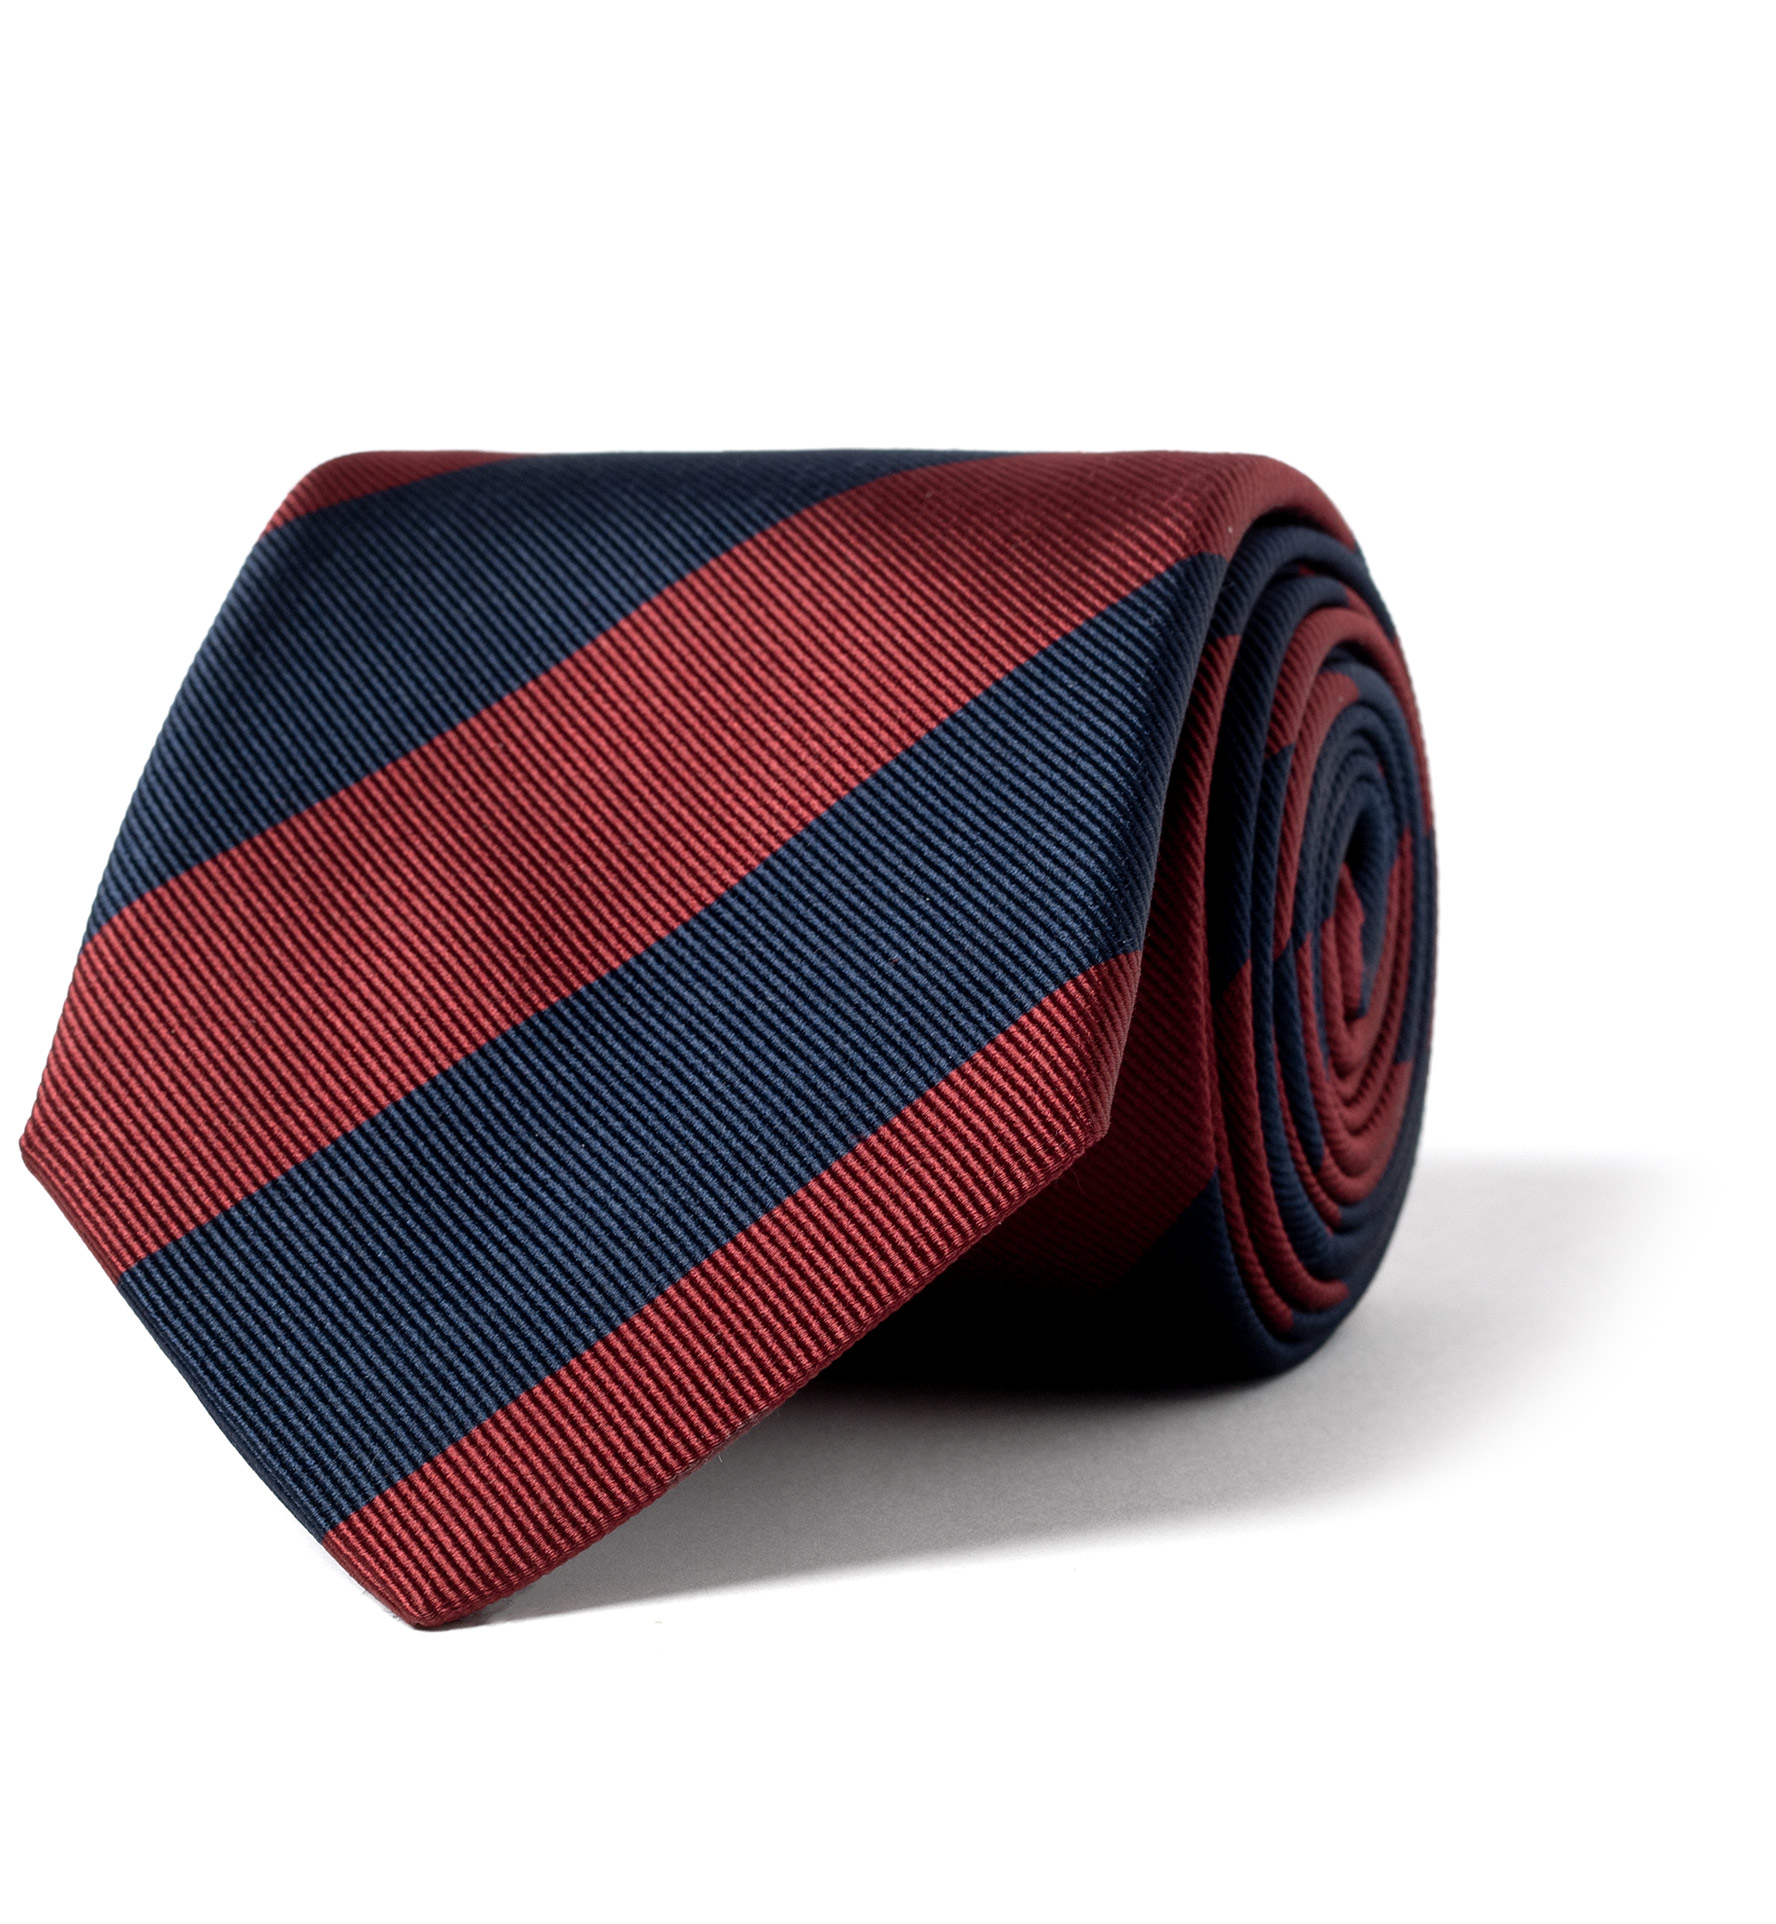 Zoom Image of Red and Navy Stripe Repp Silk Tie